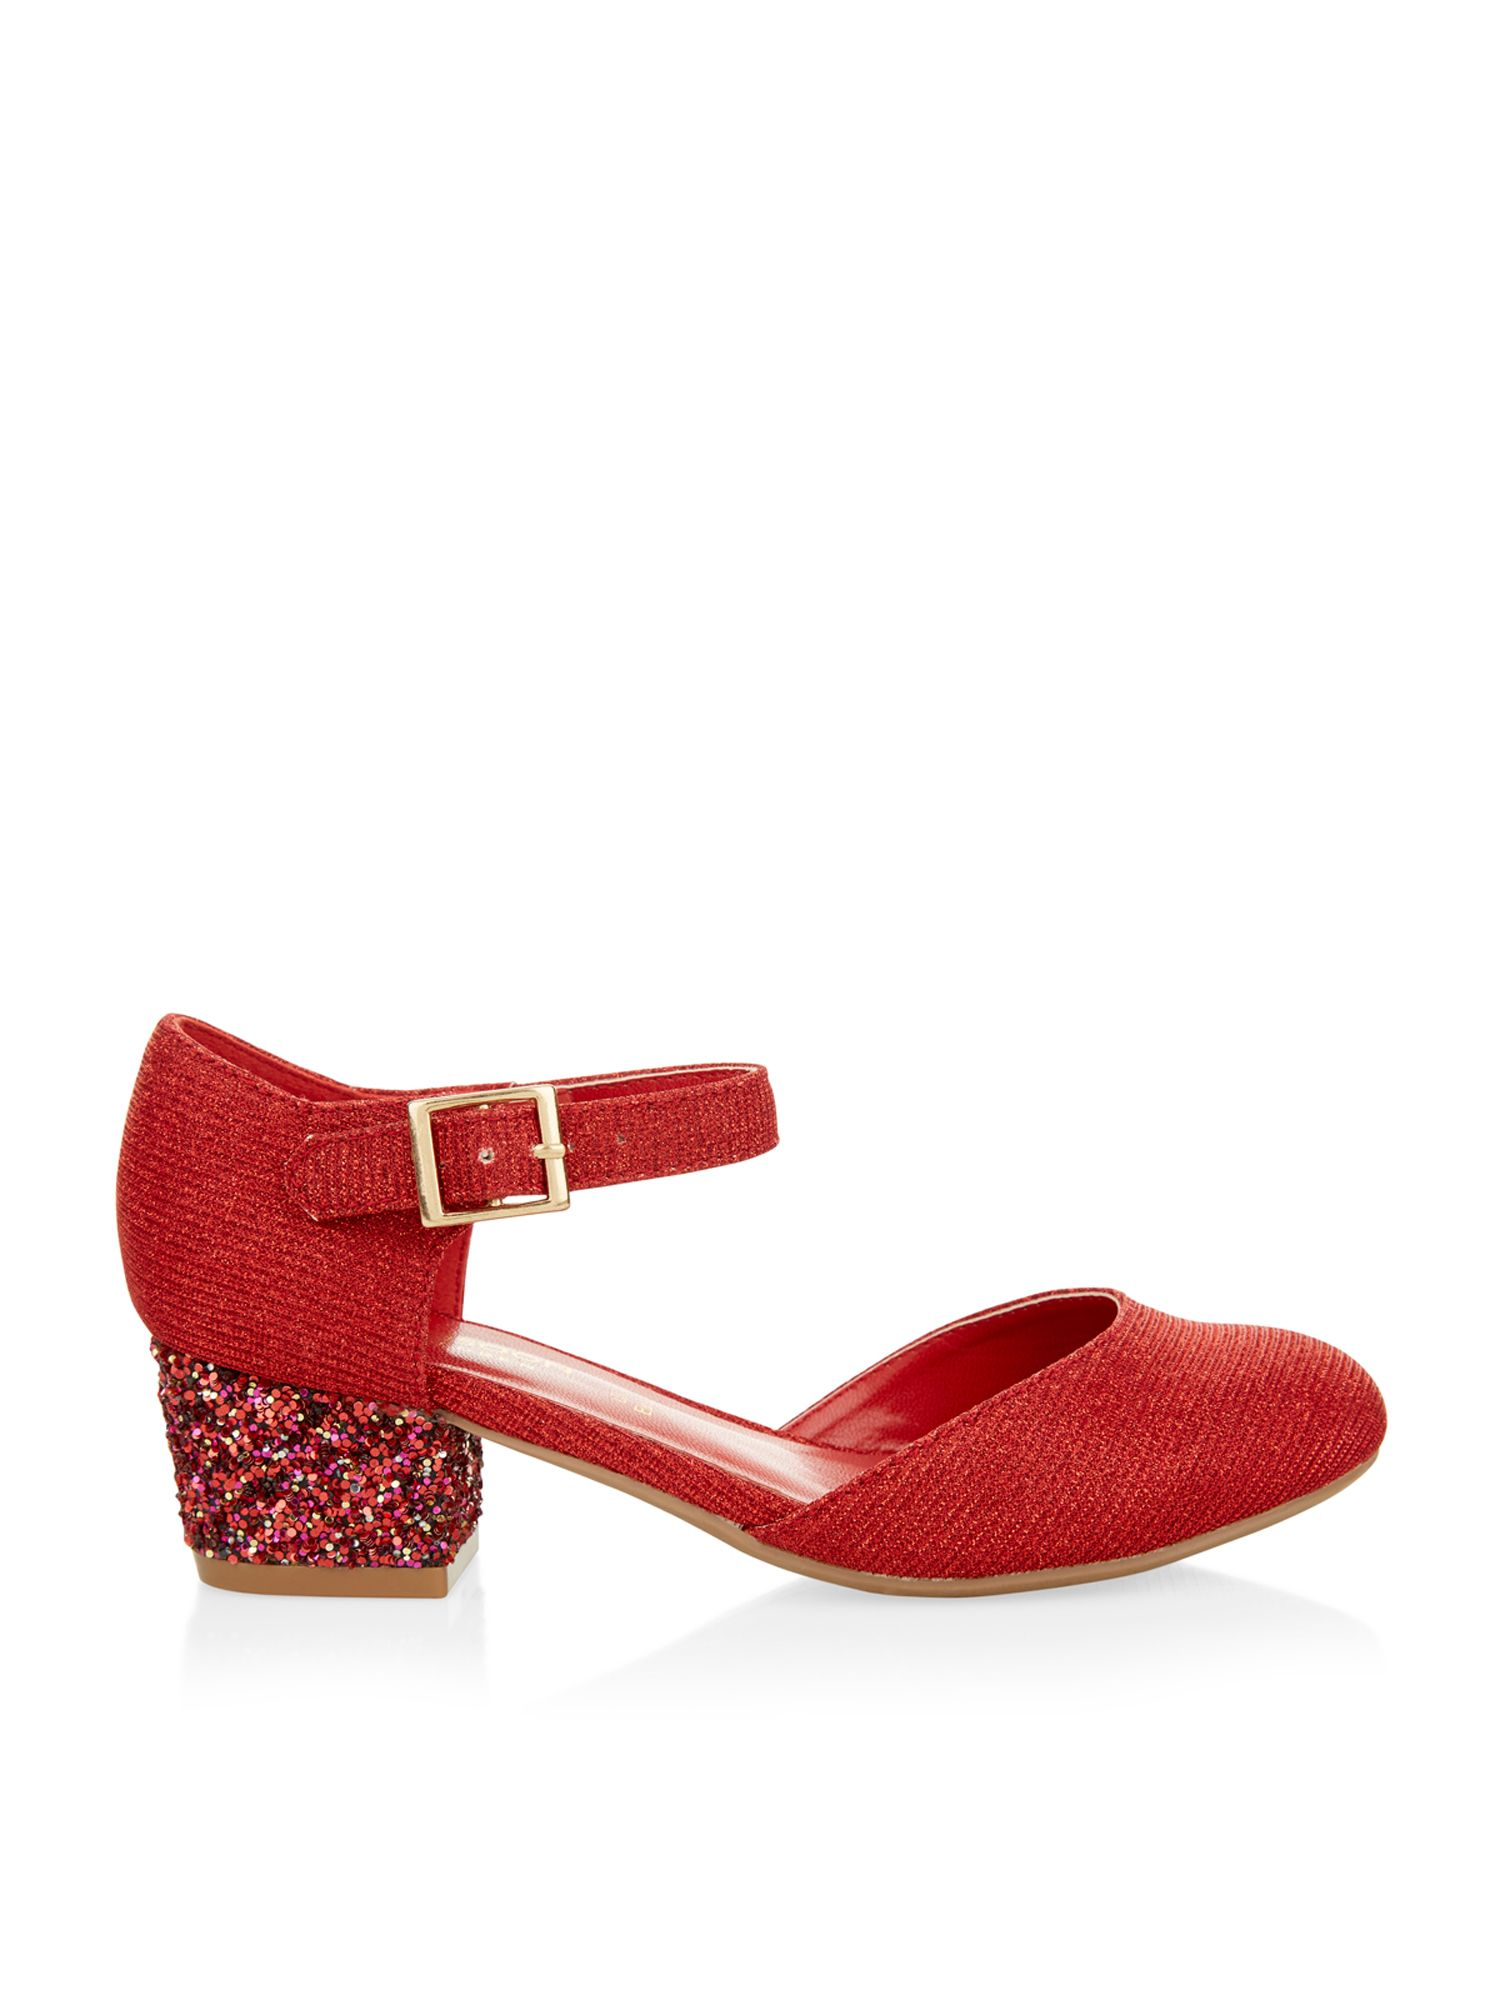 Red Sparkly Shoes Monsoon